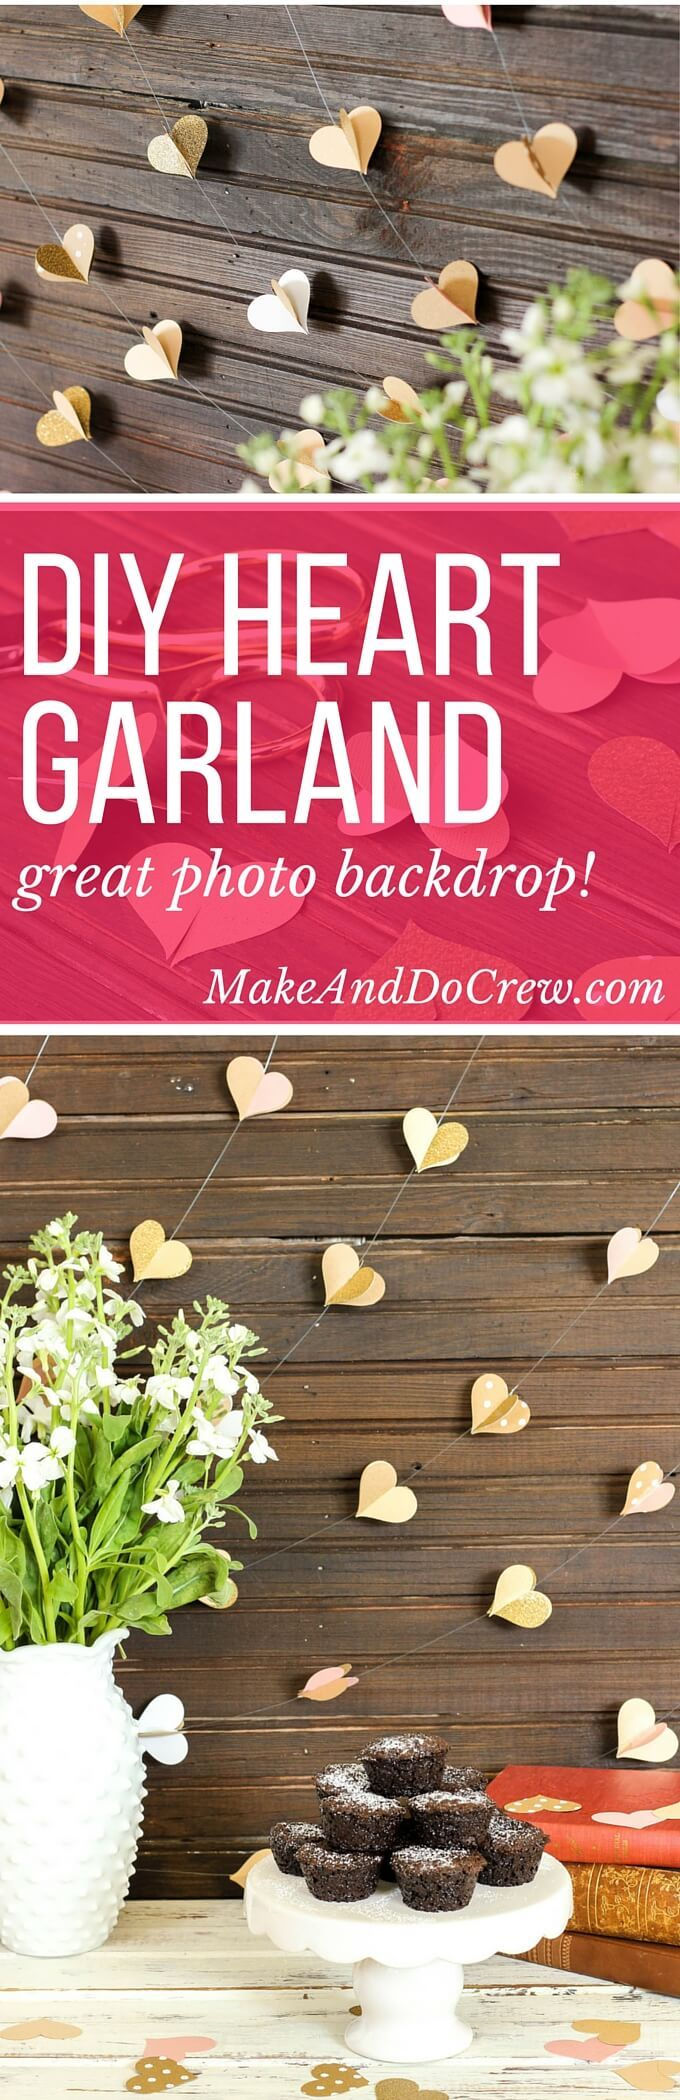 This handmade paper heart garland also adds beautiful texture and a hint of charm as a wedding photo booth backdrop. It makes a super sweet DIY Valentine's Day decor idea, too! Bonus: easy craft project to use up your scrapbooking paper scraps! Click to view full tutorial. | MakeAndDoCrew.com